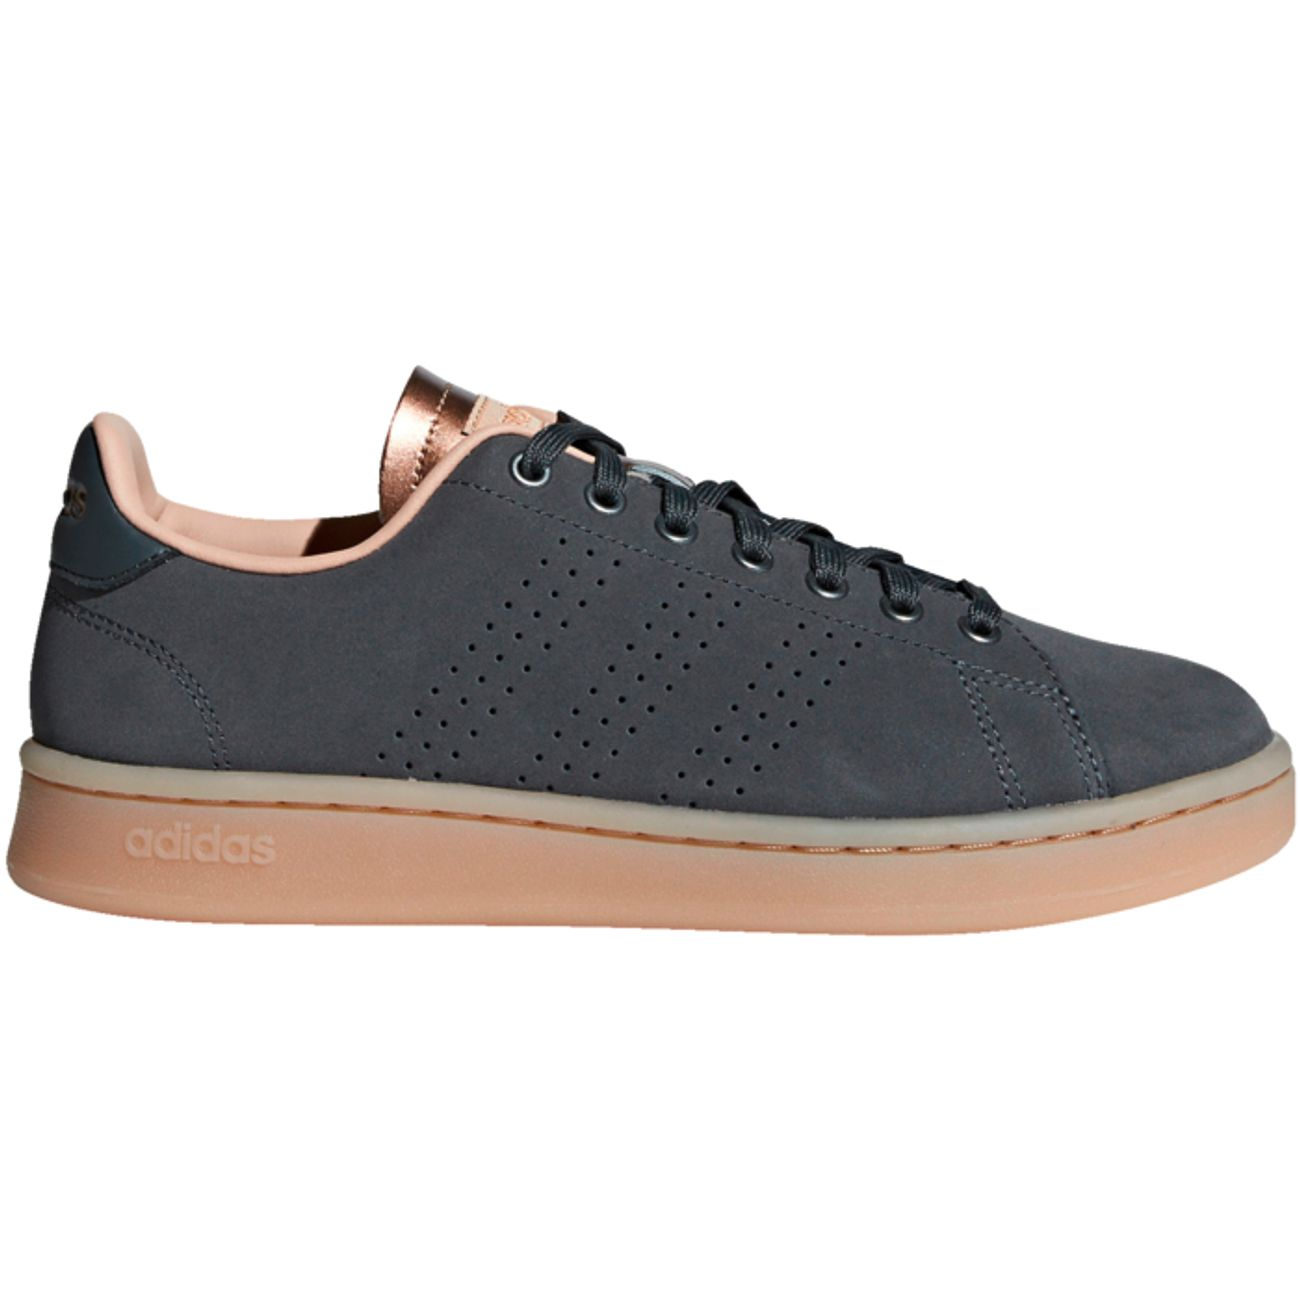 Basses Advantage Loisirs Chaussures Adidas Femme fg76vYby